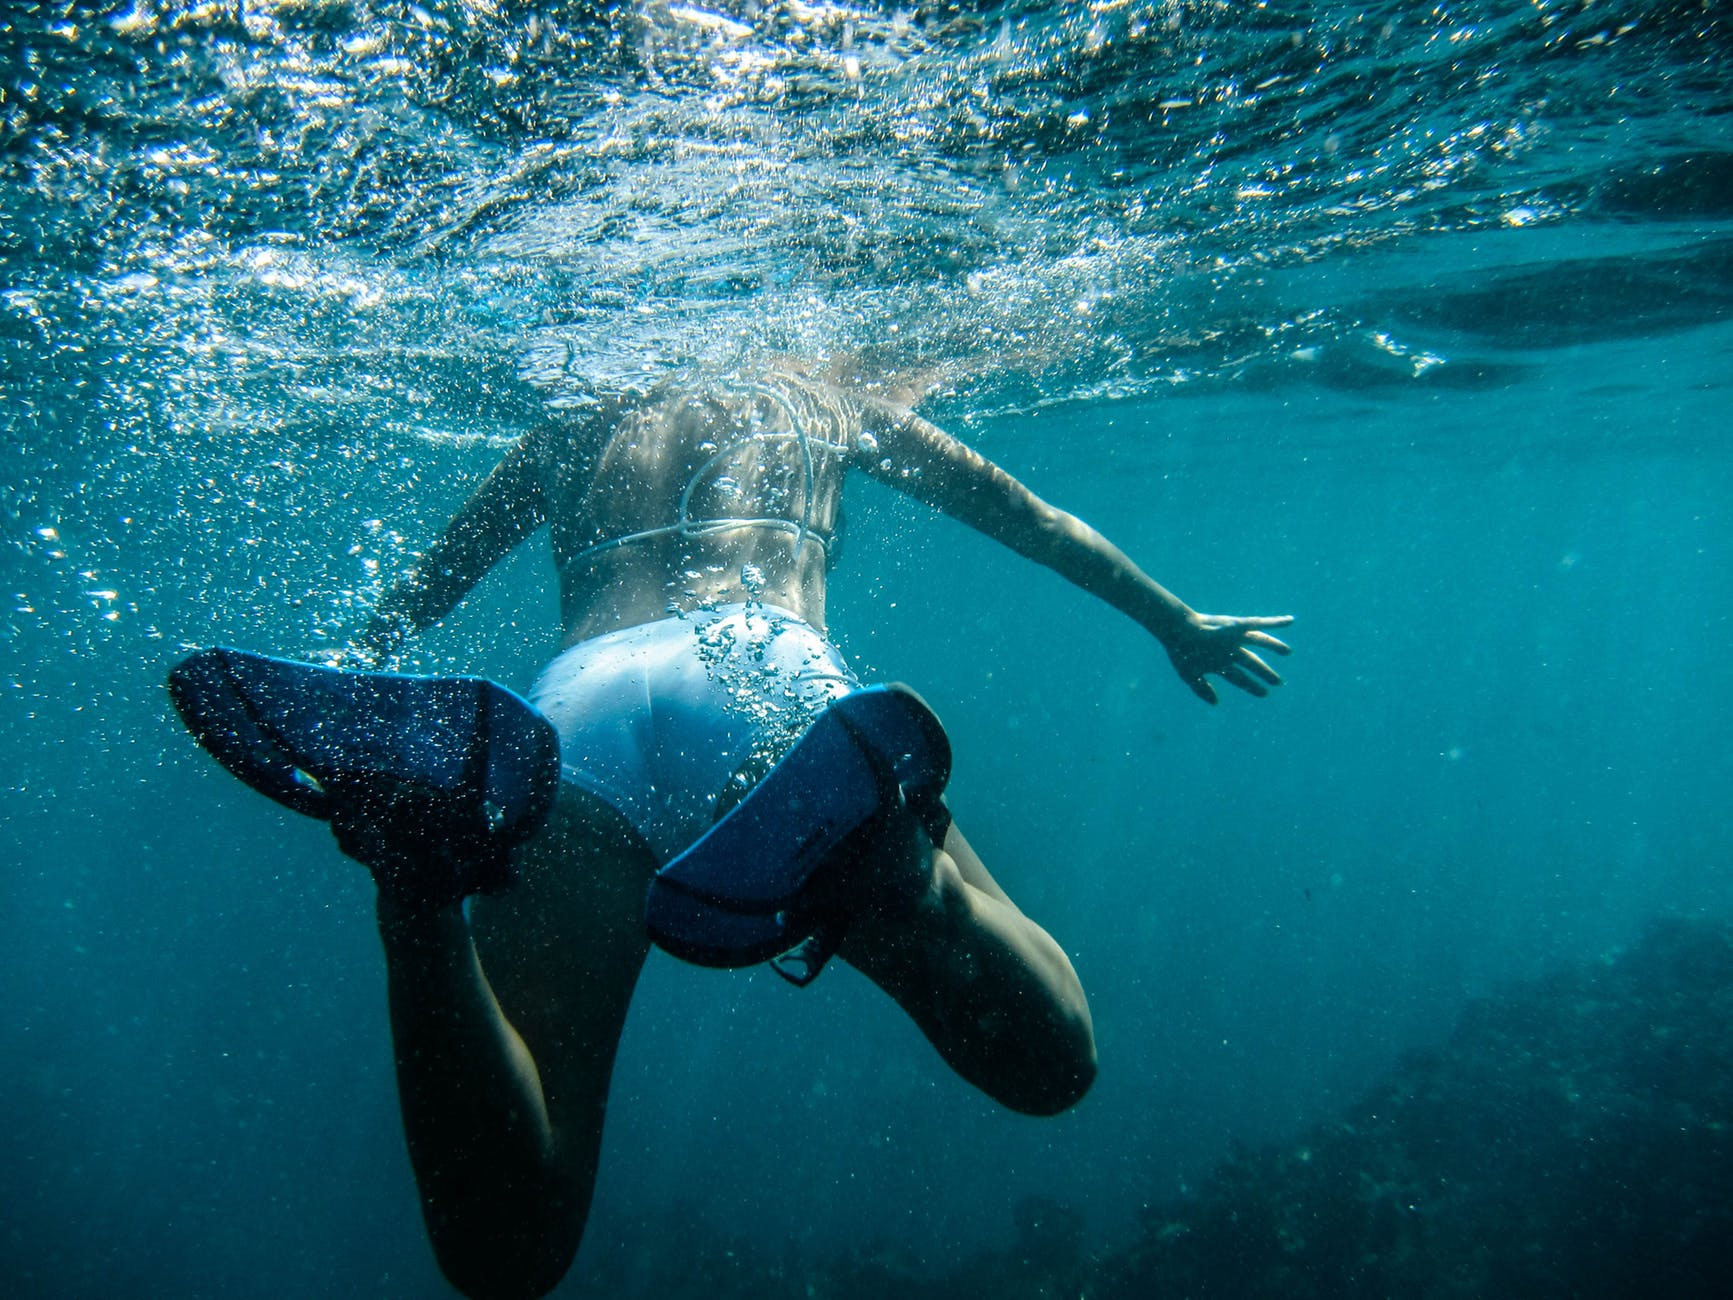 swimming underwater diving person